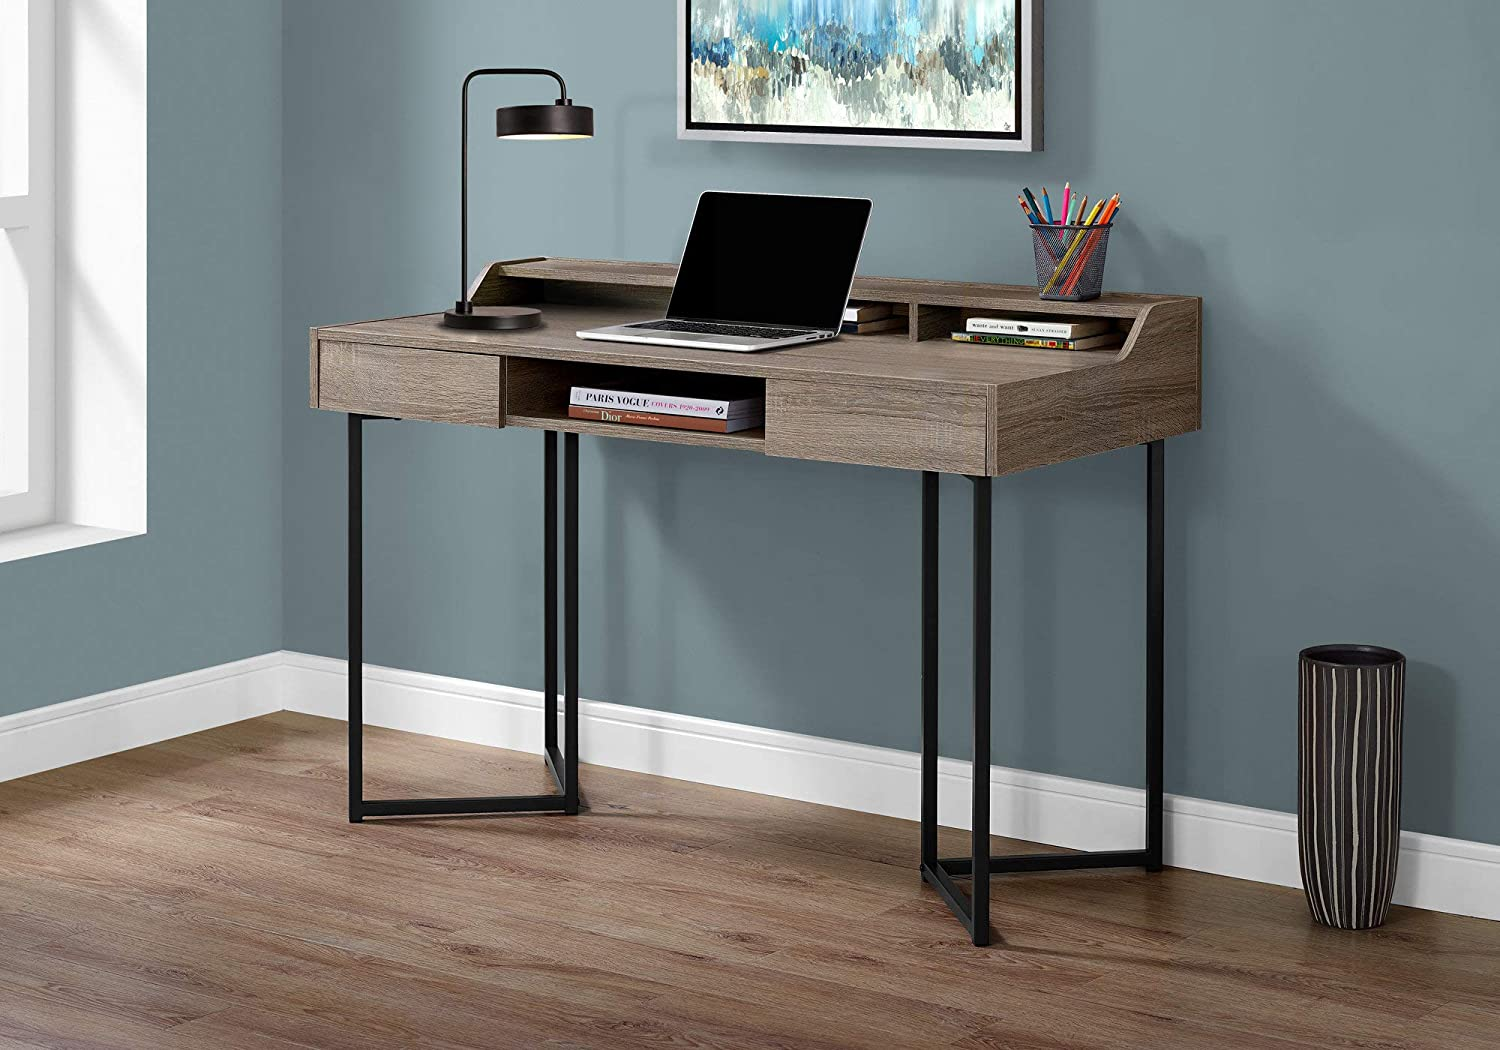 """Monarch Specialties 7360 Computer Desk-Modern Contemporary Style-Laptop Table for Home & Office with Hutch Drawers and Shelves, 48"""" L, Dark Taupe"""